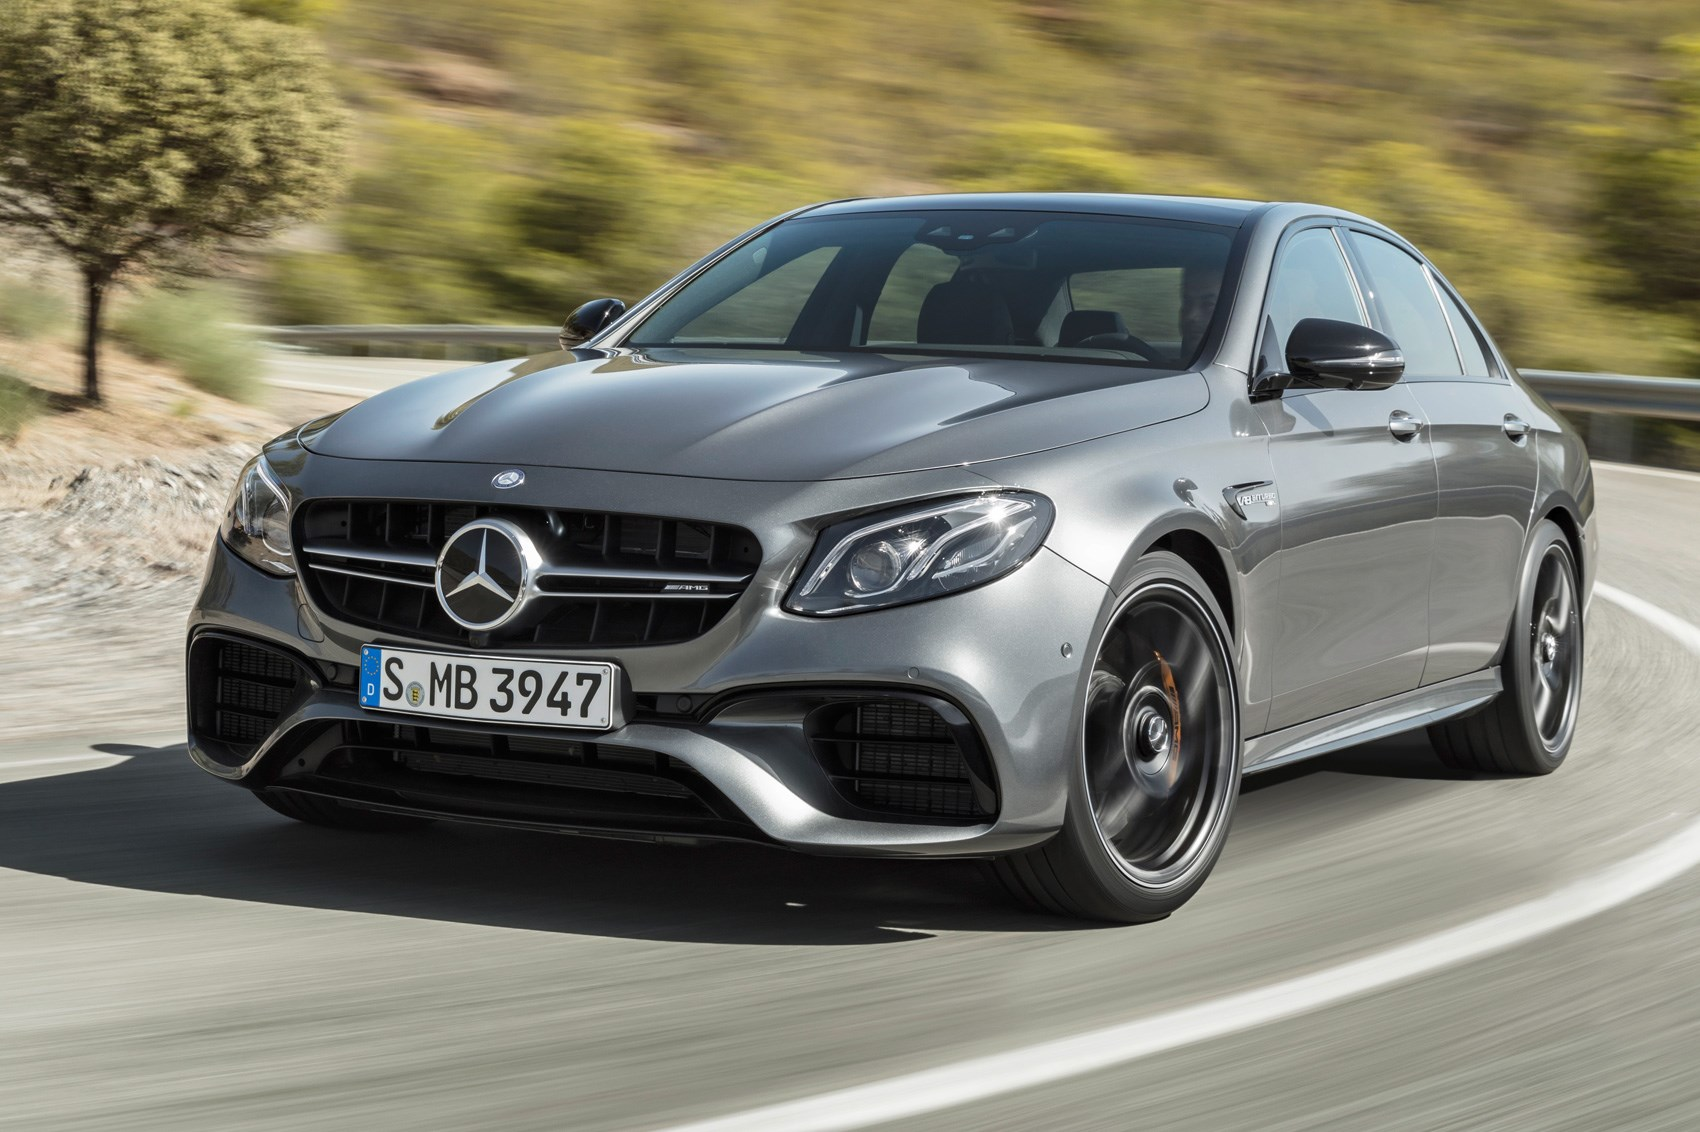 2017 Mercedes Amg E63 S 4matic